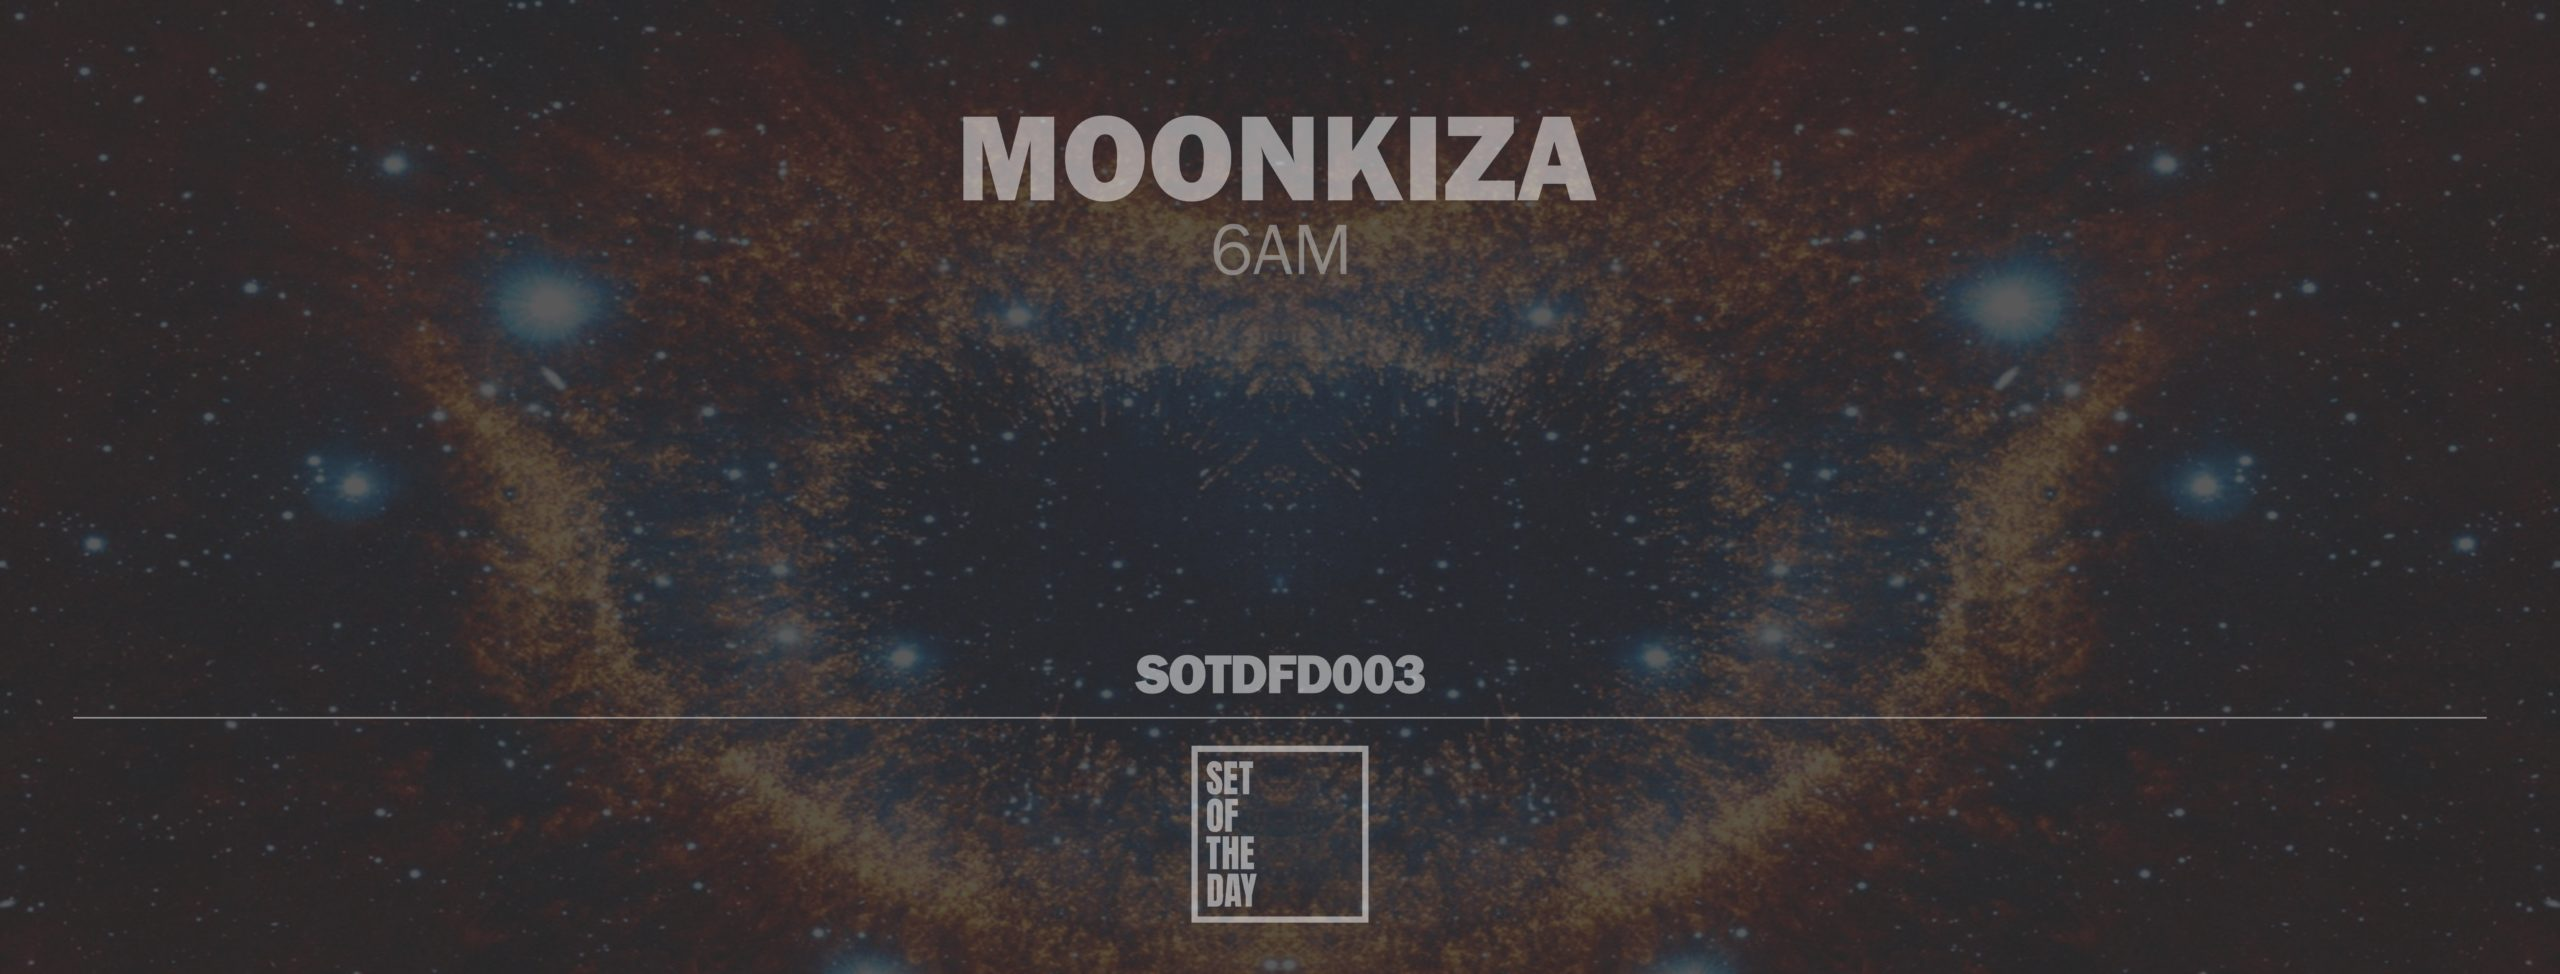 moonkiza - 6am